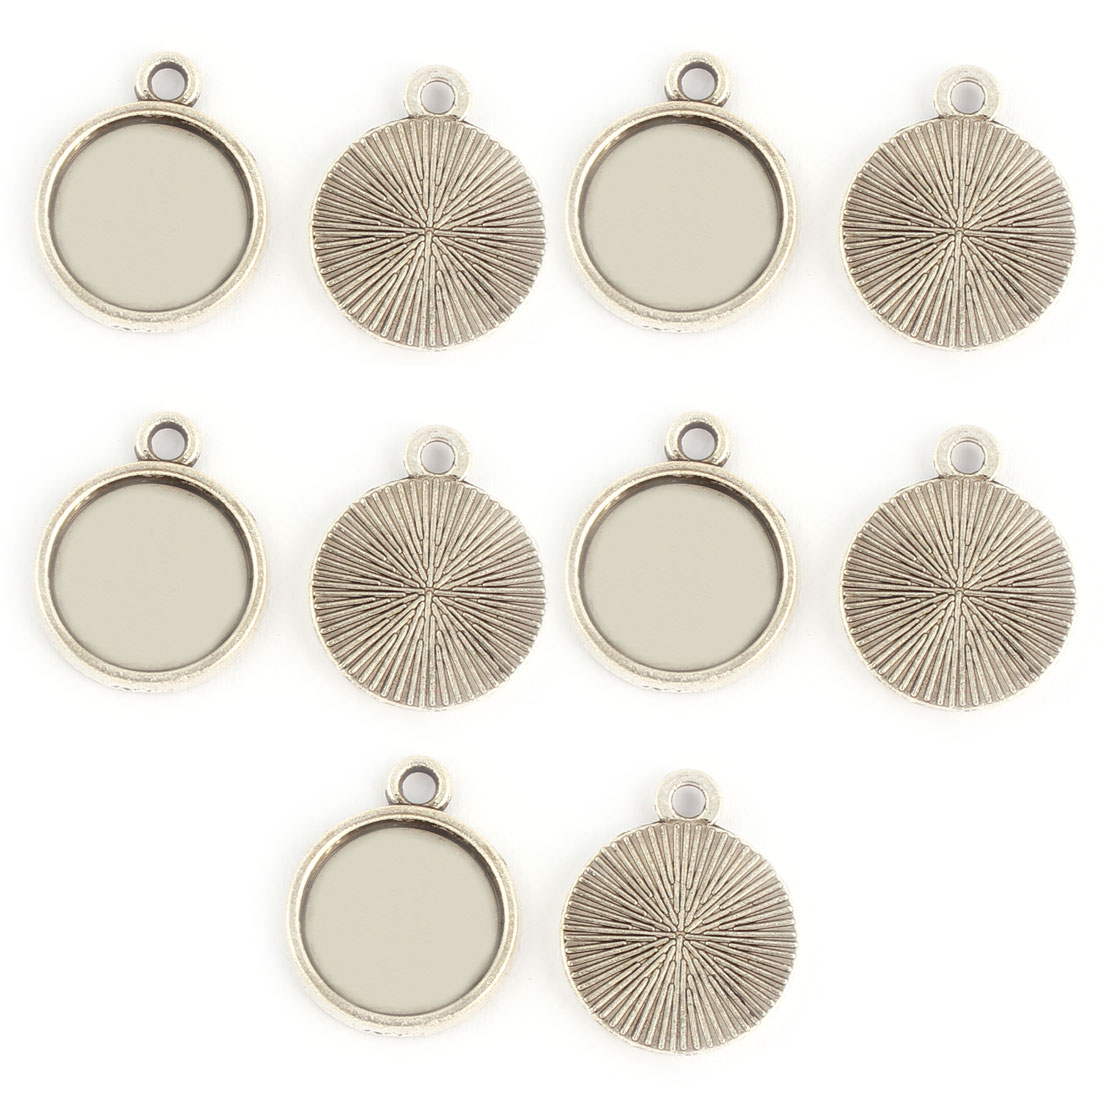 Household Copper Alloy DIY Retro Style Round Pendant Trays Silver Tone 12mm Inner Dia 10 Pcs